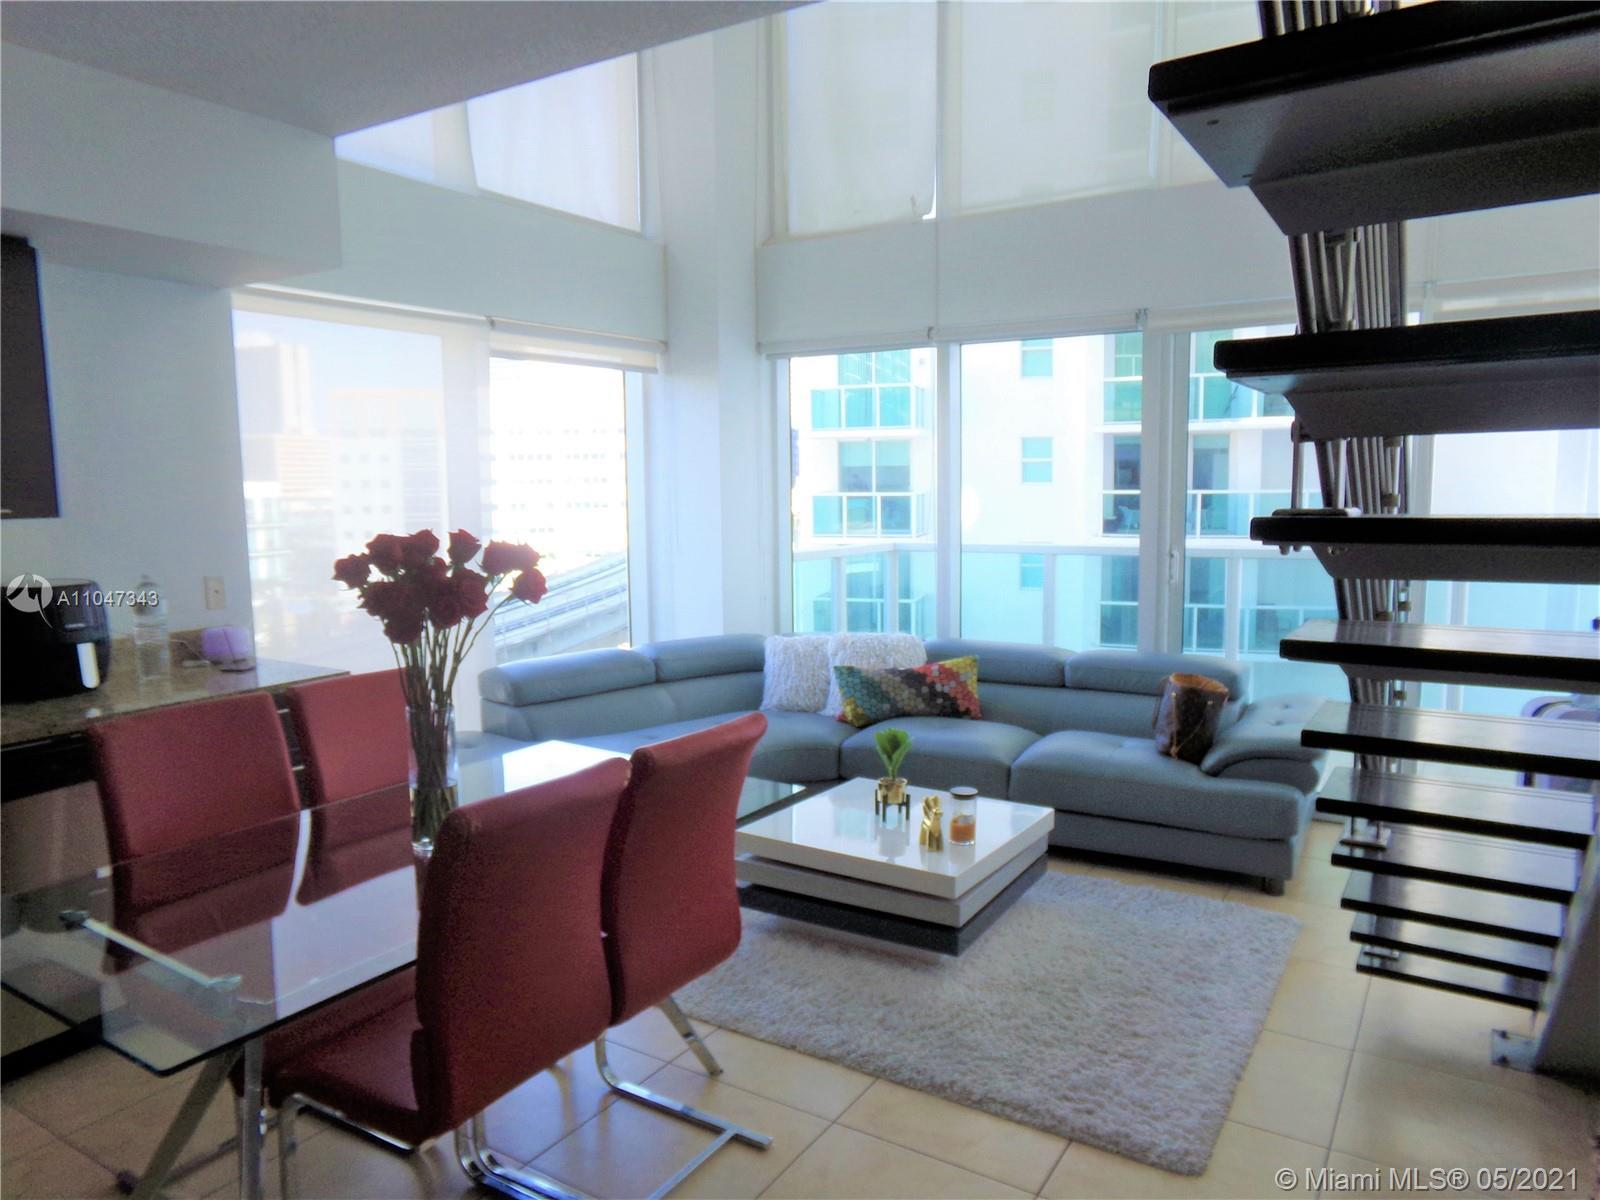 EXQUISITE LIVING RIGHT ON THE BEAUTIFUL MIAMI RIVER! 2 BED/ 2 BATH LOFT AT BRICKELL ON THE RIVER WIT